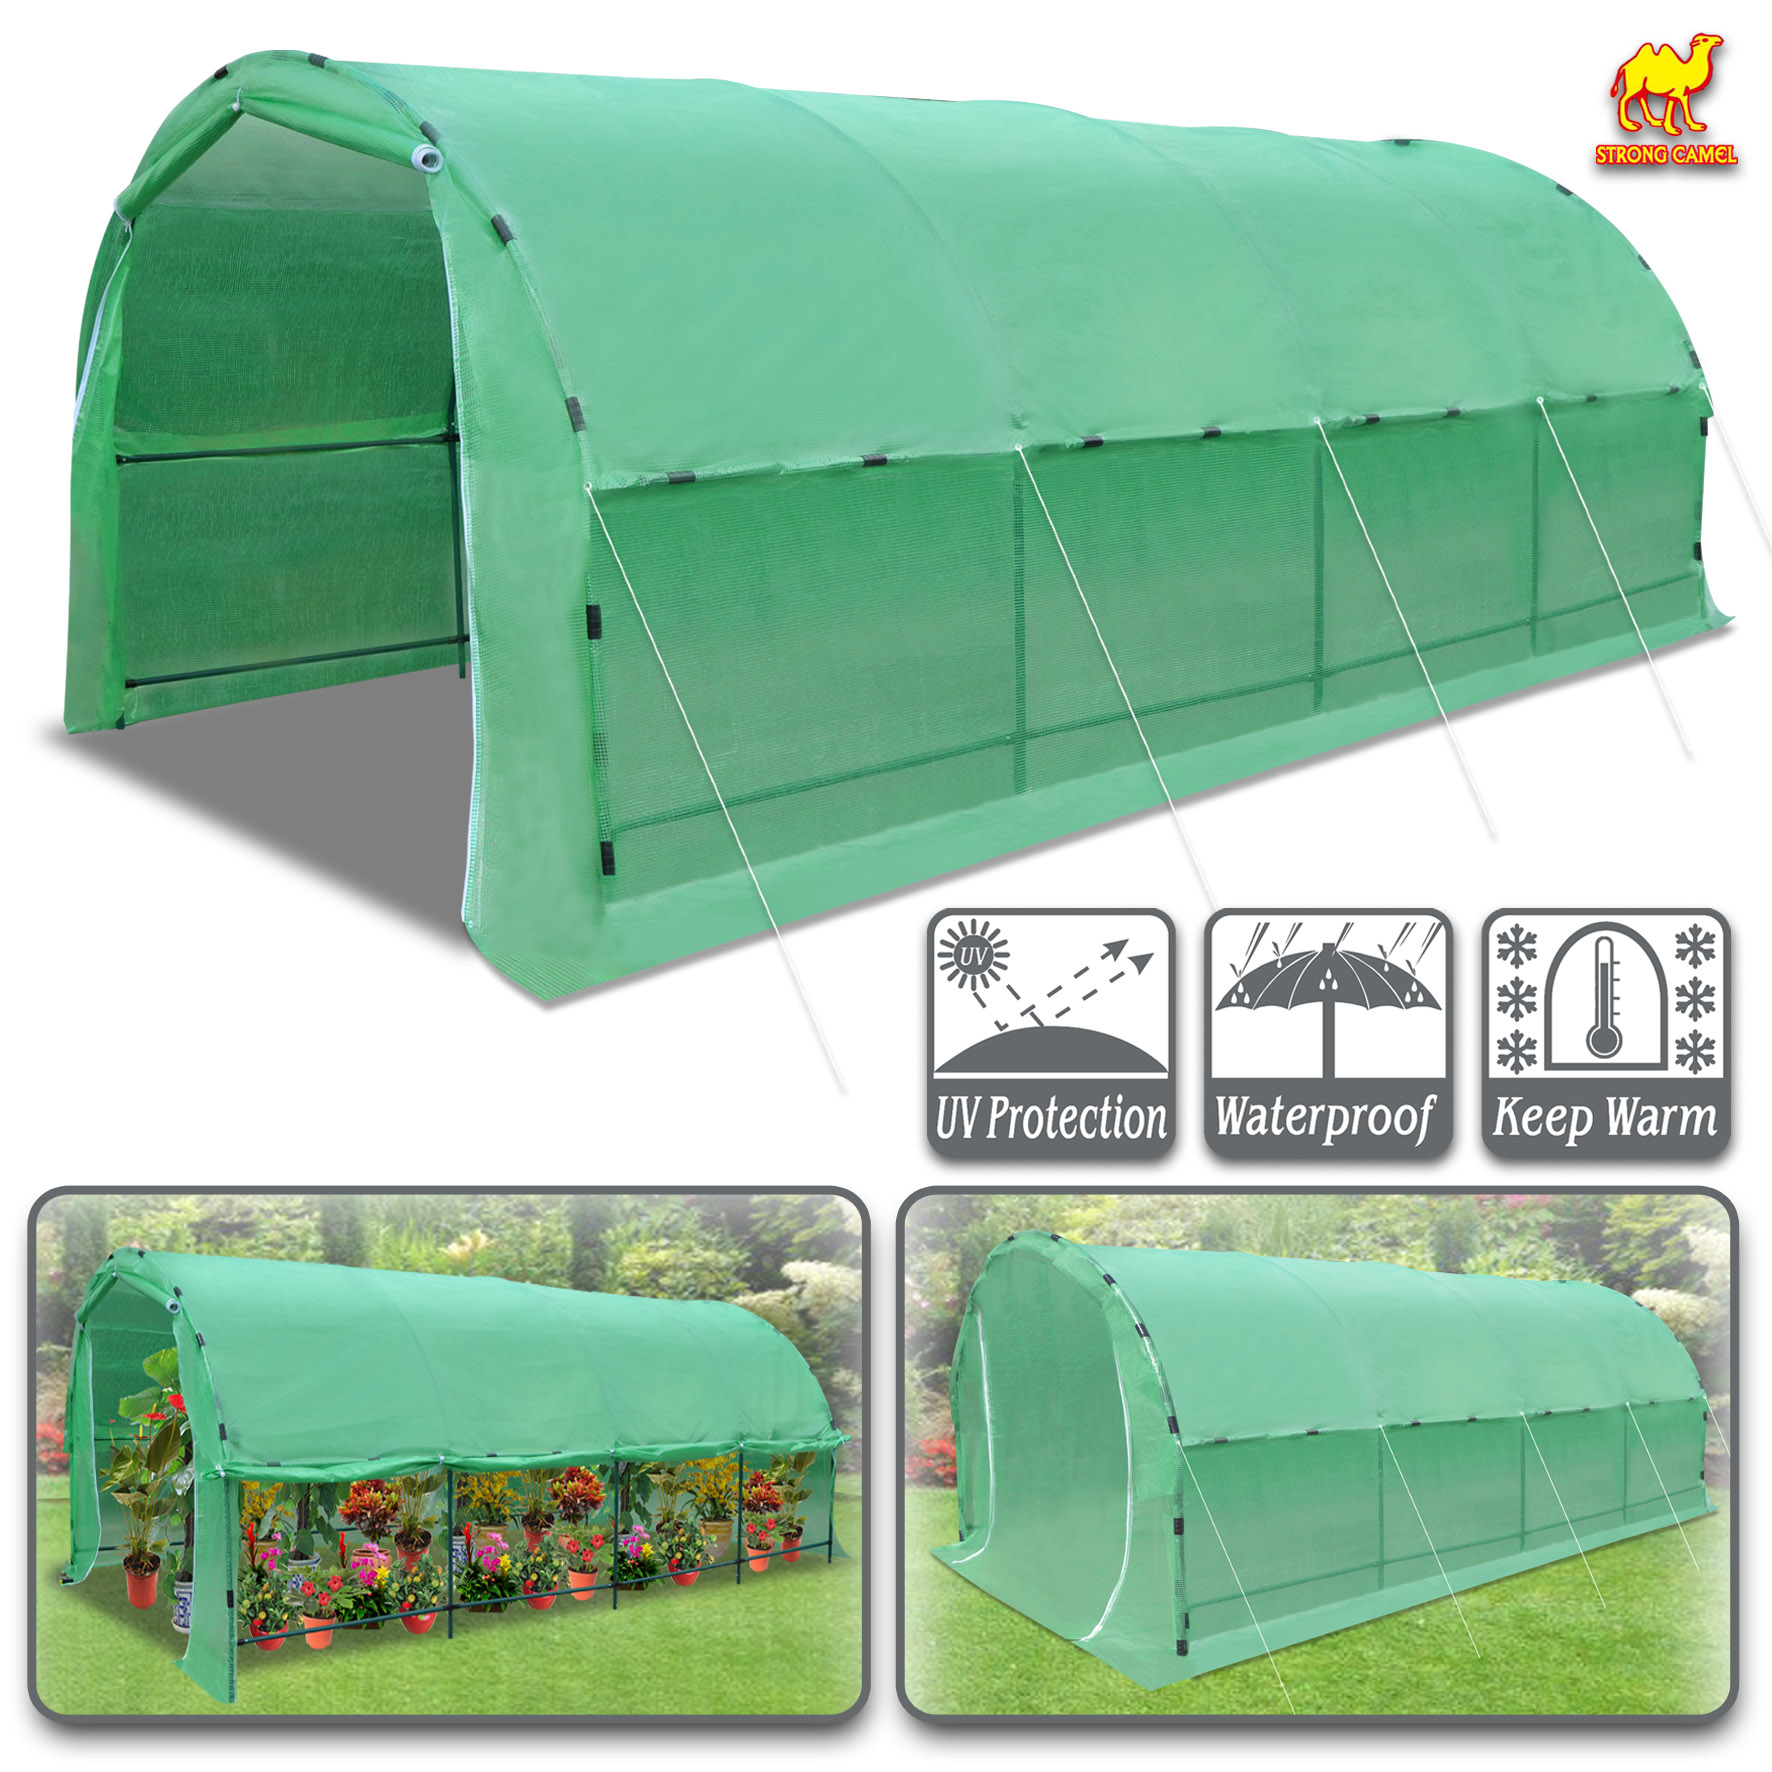 Strong Camel Large Portable Greenhouse Heavy Duty 20' X10' X 7' Walk In Outdoor Plant Gardening Hot Green House with ABS Snap Clamp